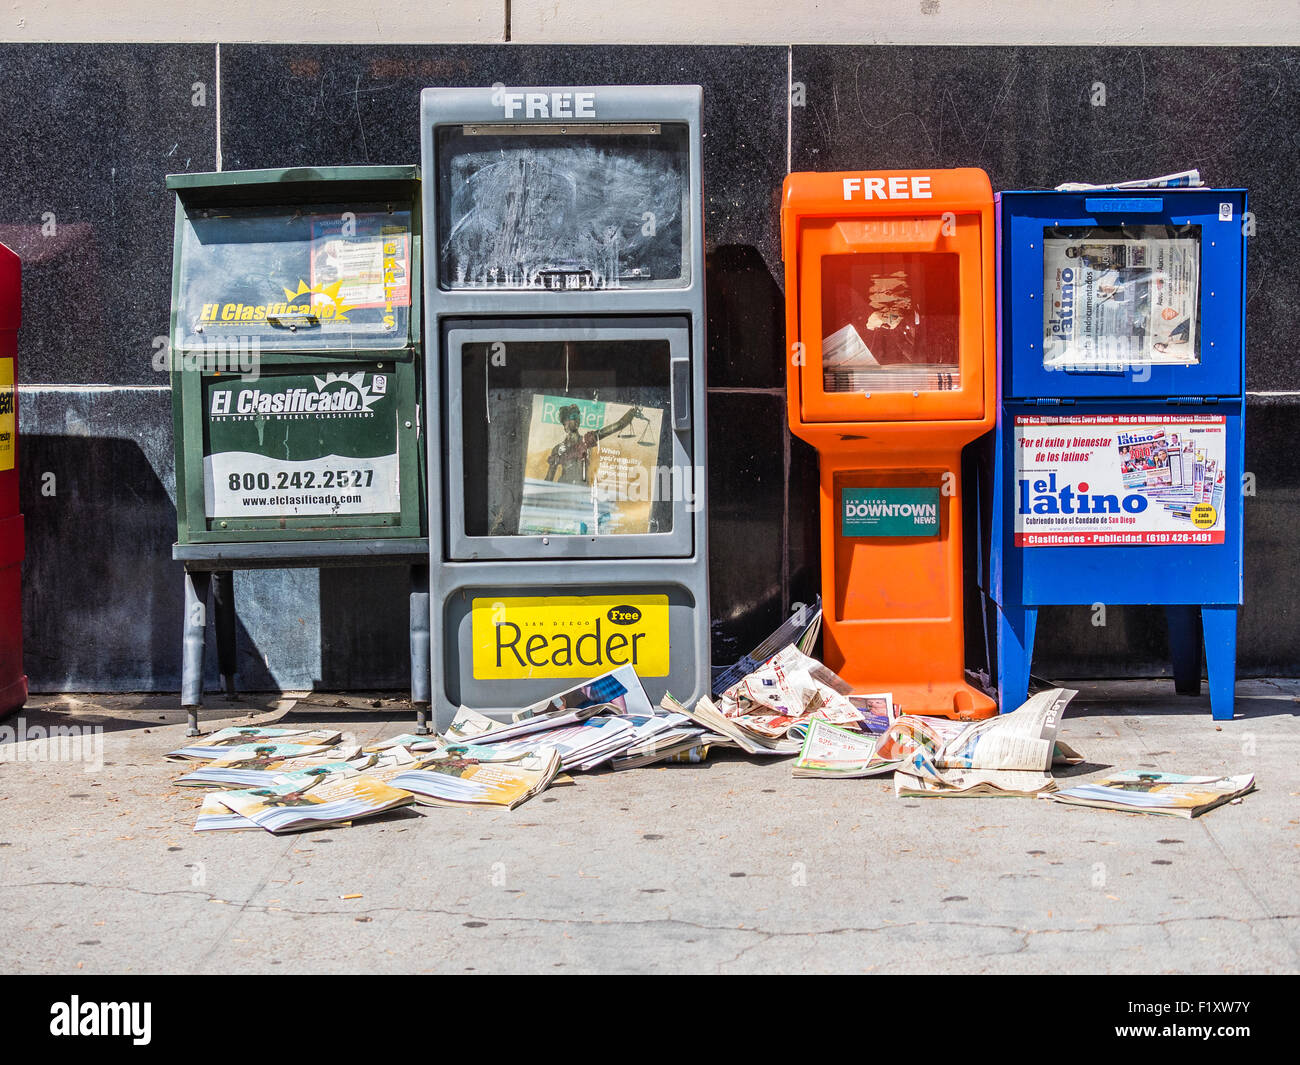 Newspaper stands with loose newspapers lying on the sidewalk creating a mess in San Diego, CA. - Stock Image